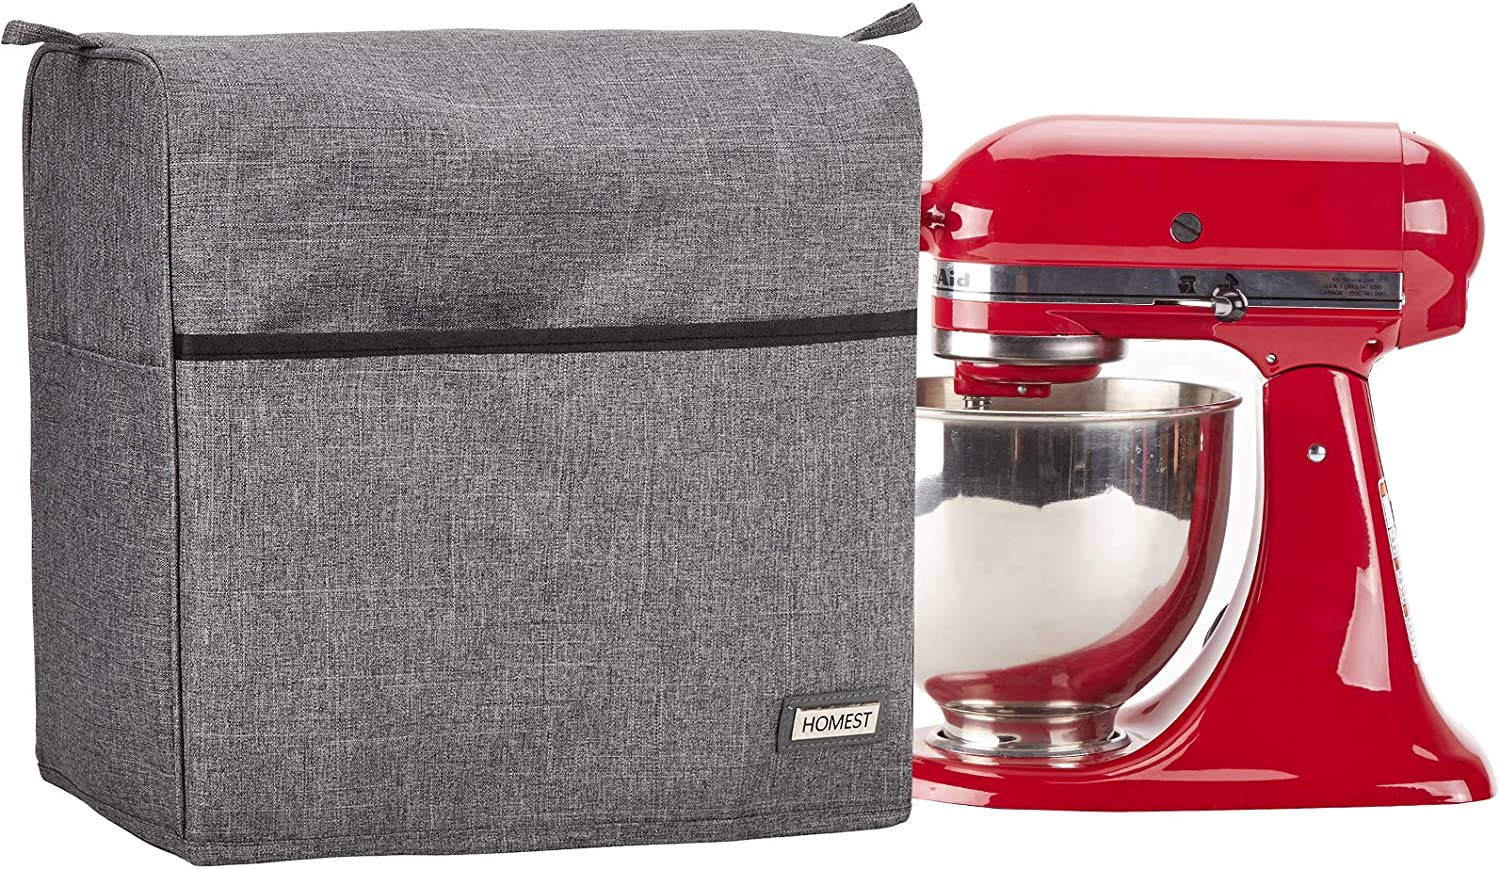 Dust Cover with Zipper Pocket for Accessories Grey NICOGENA Stand Mixer Cover Compatible with KitchenAid Tilt Head 4.5-5 Quart